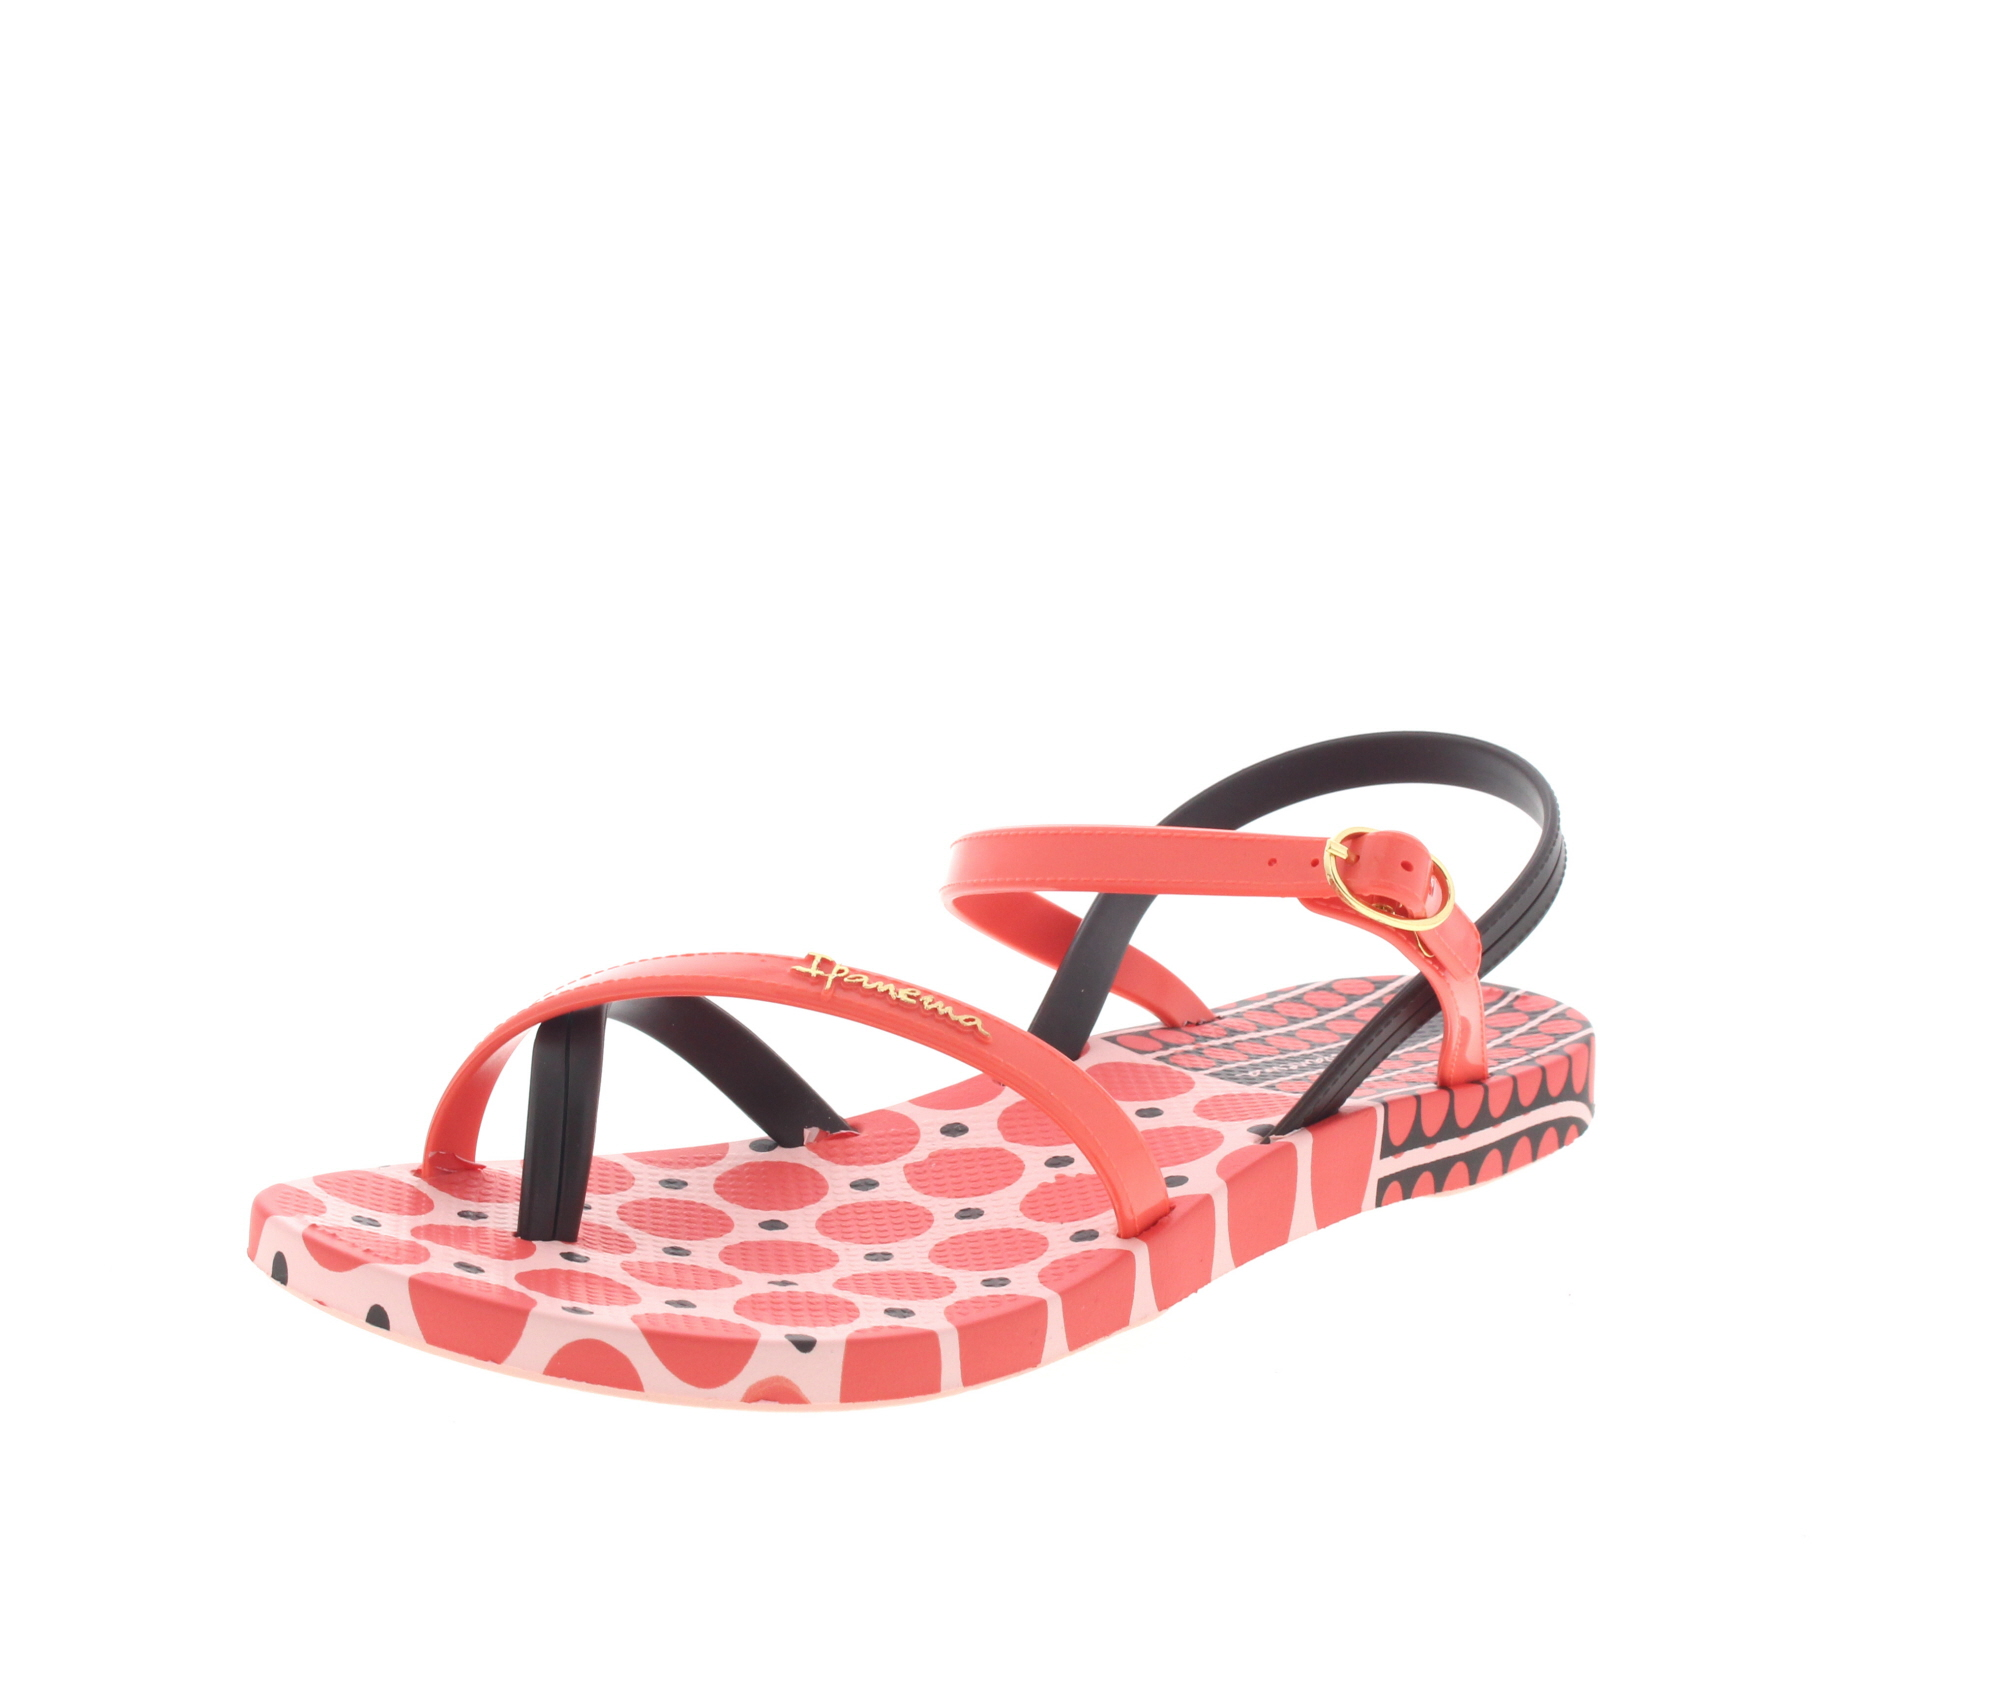 IPANEMA - FASHION SANDAL FEM III 81709 - pink brown-0